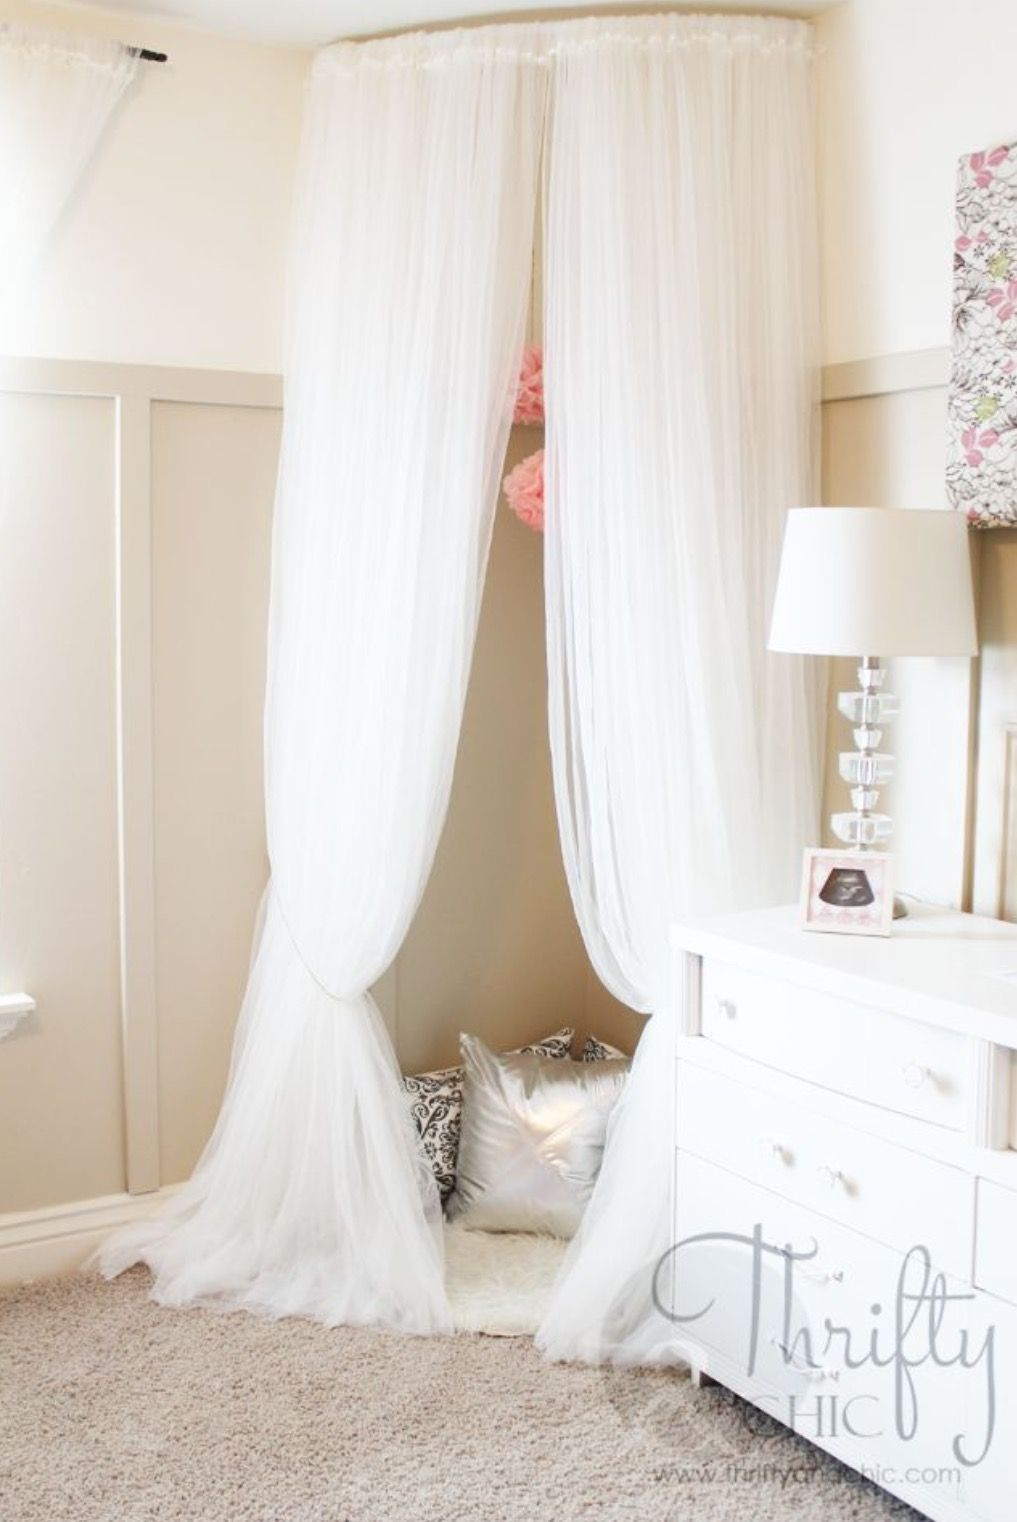 whimsical canopy tent or reading nook made from curved curtain rod and ikea curtains good idea for a kid bedroom